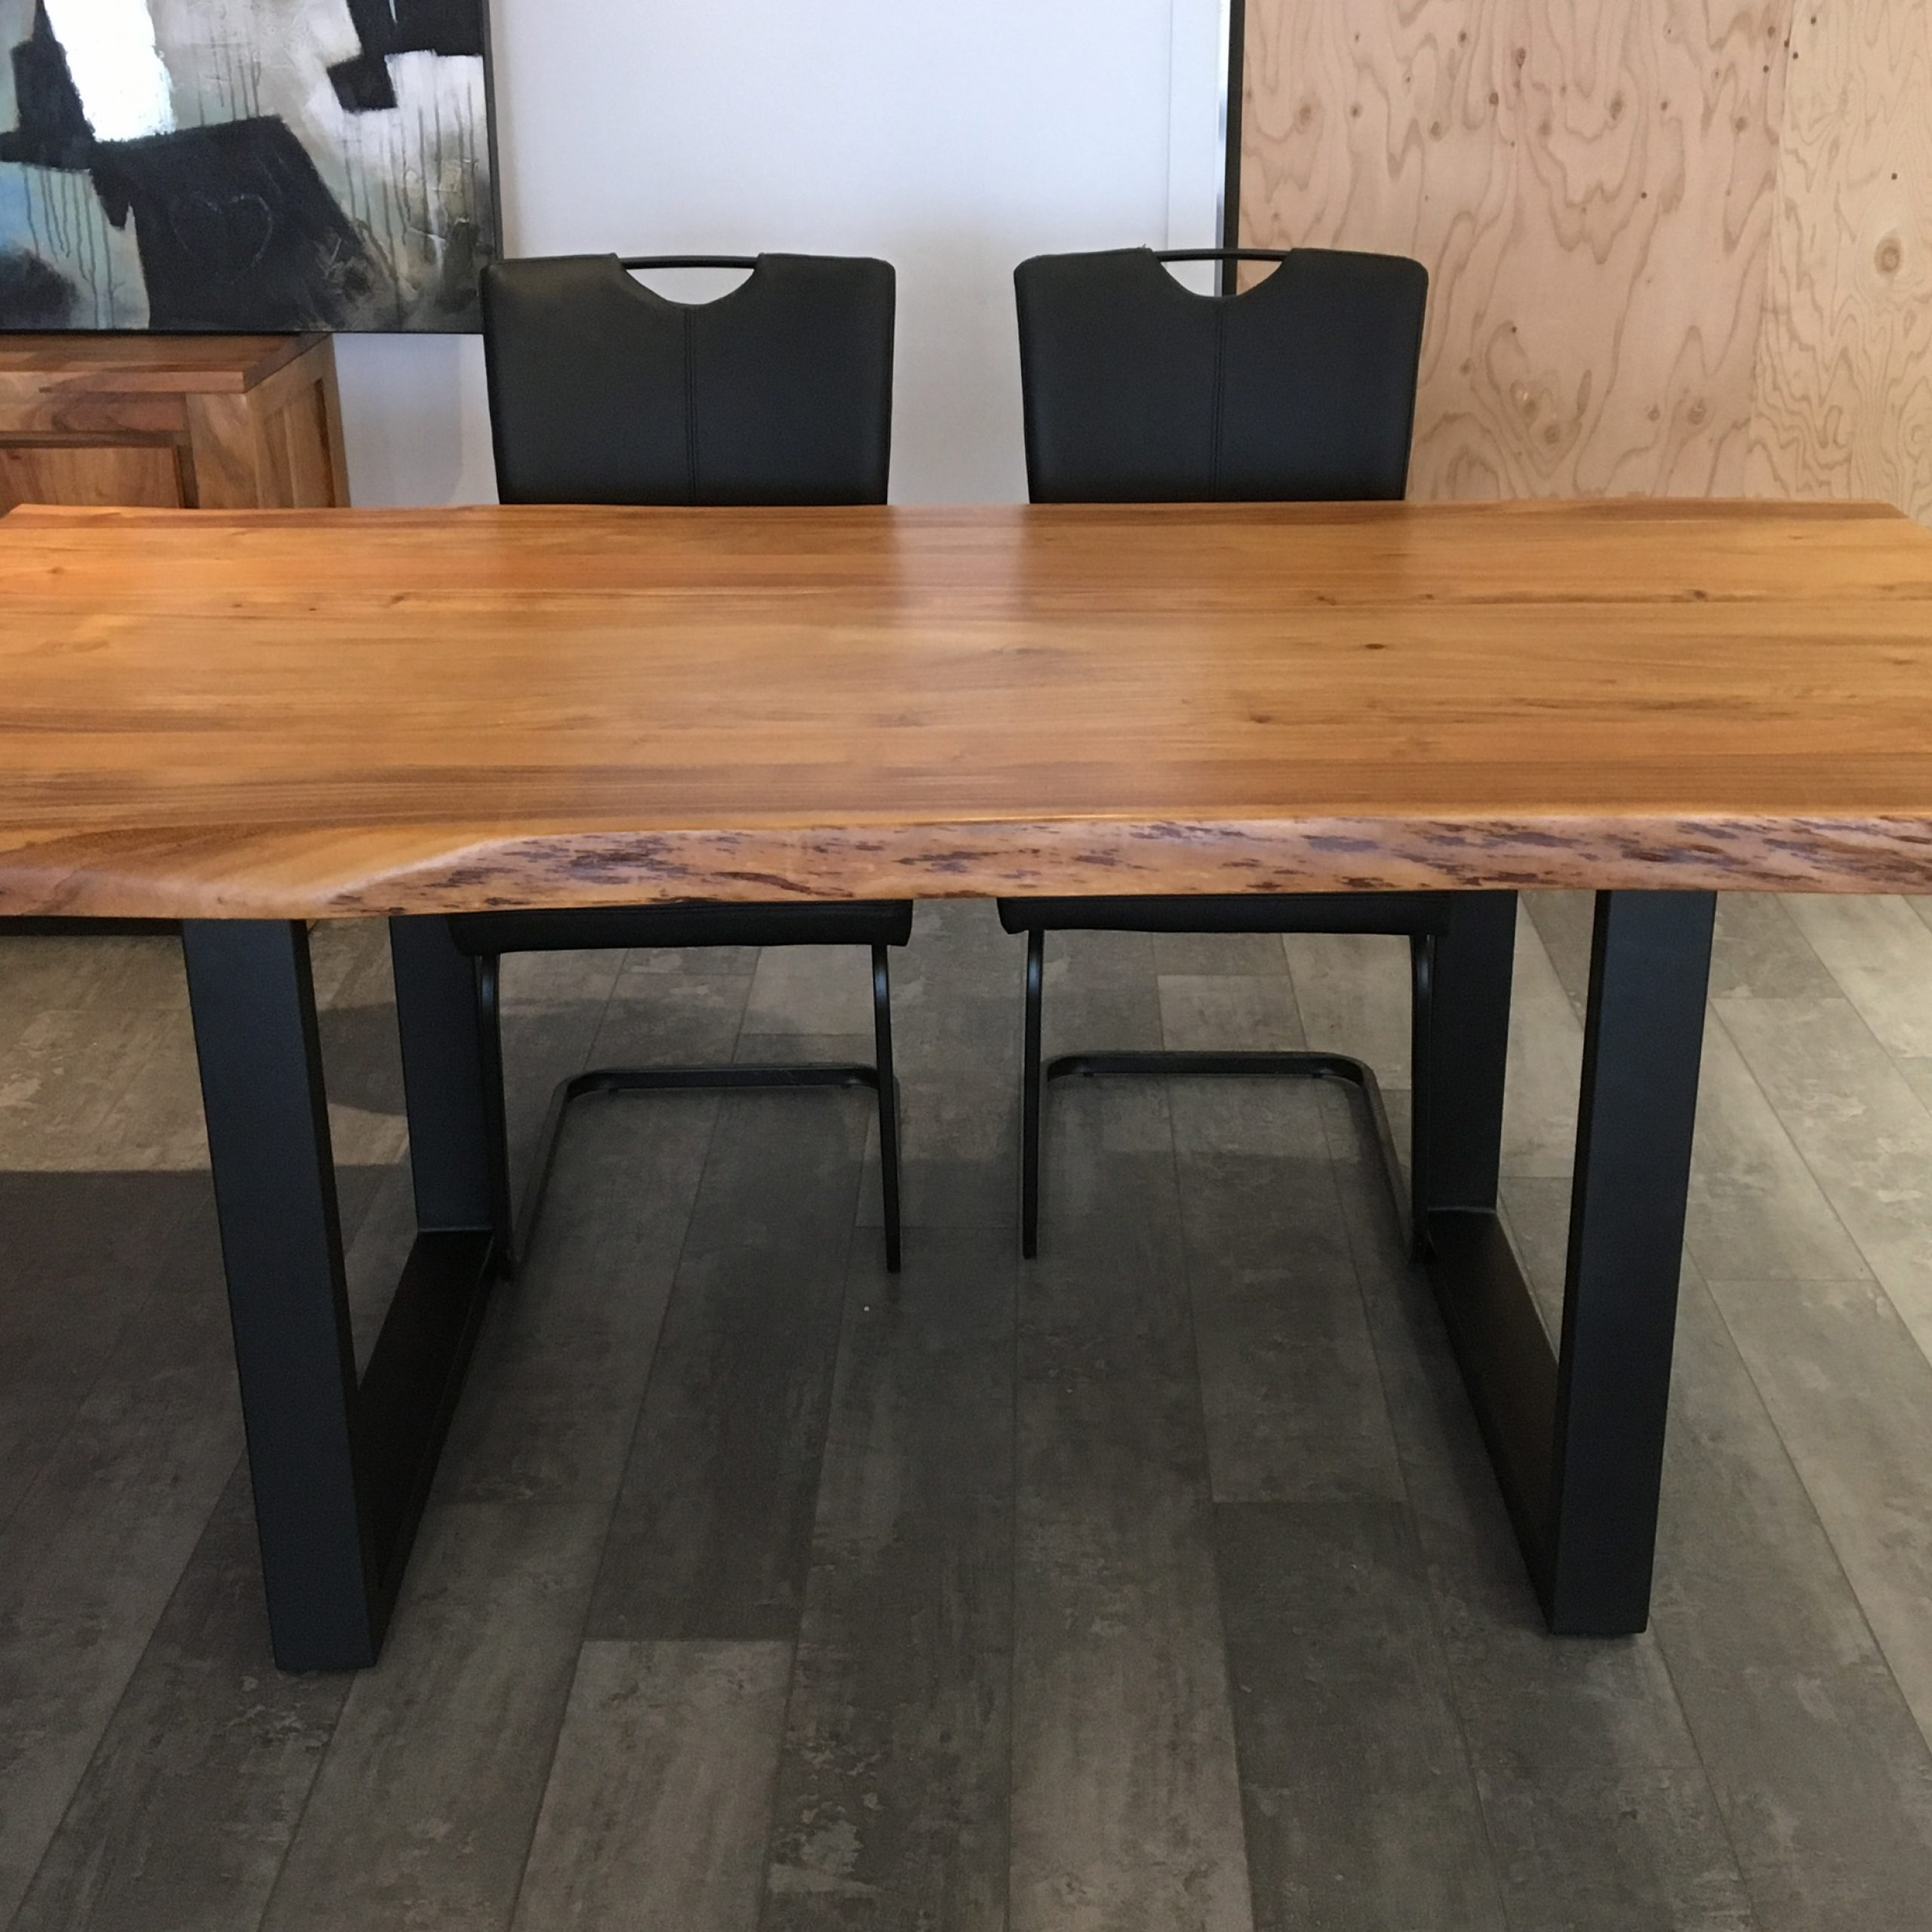 """Best and Newest Acacia Dining Tables With Black Rocket-Legs with Corcoran Acacia Live Edge Dining Table With Black Rocket-Legs - 96"""""""